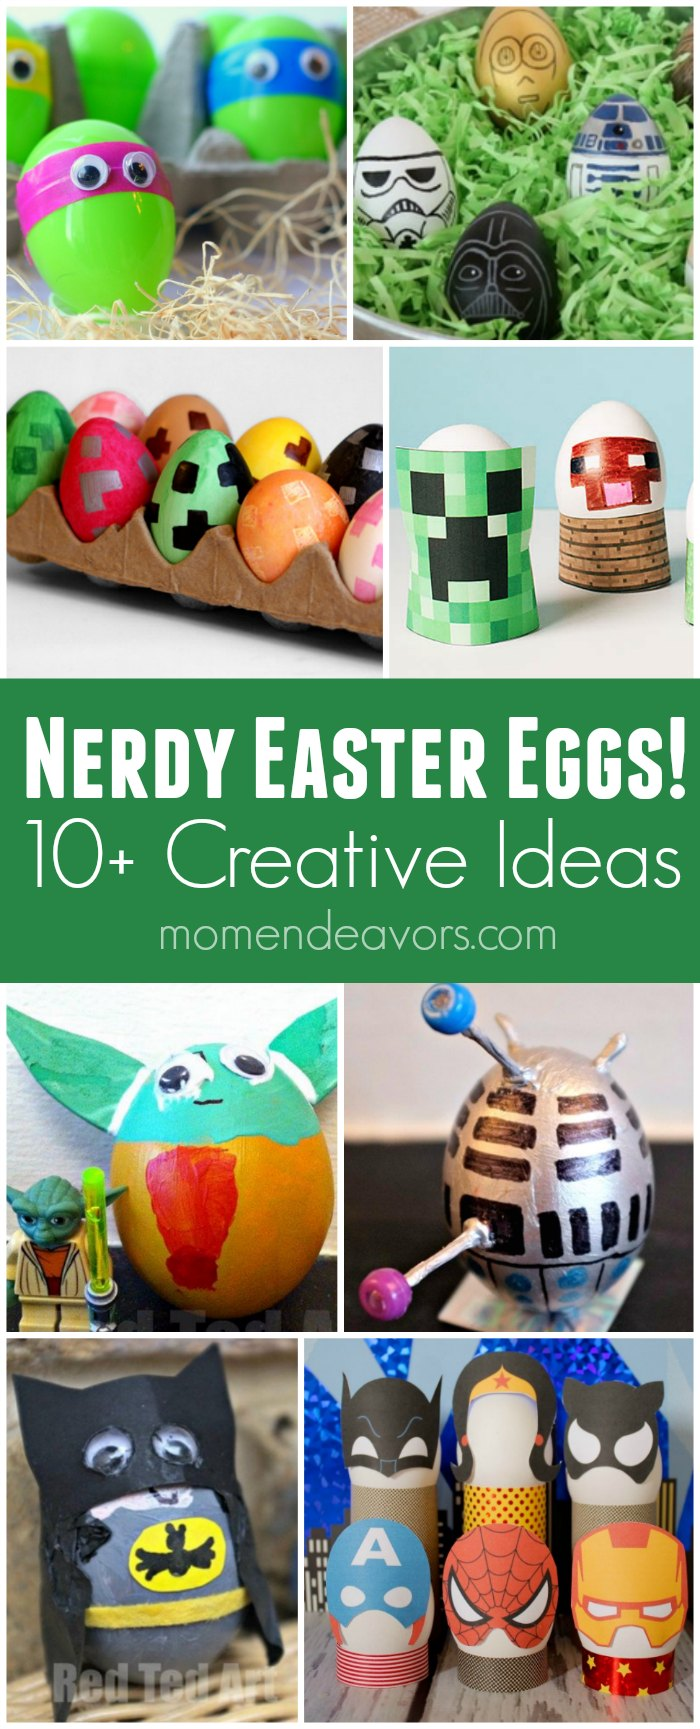 10+ Nerdy Easter Egg Ideas